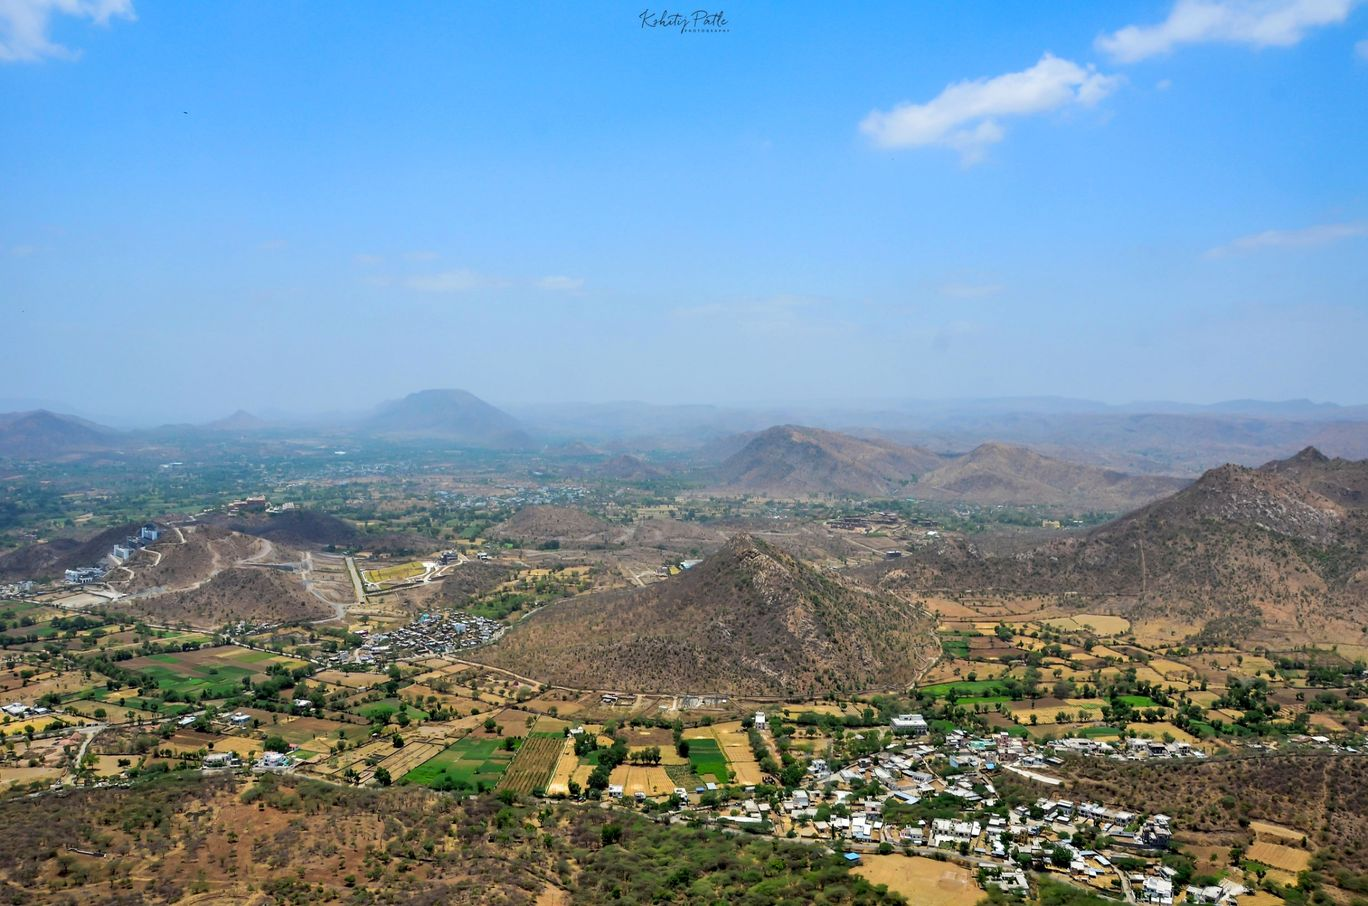 Photo of Udaipur By Kshitij Patle